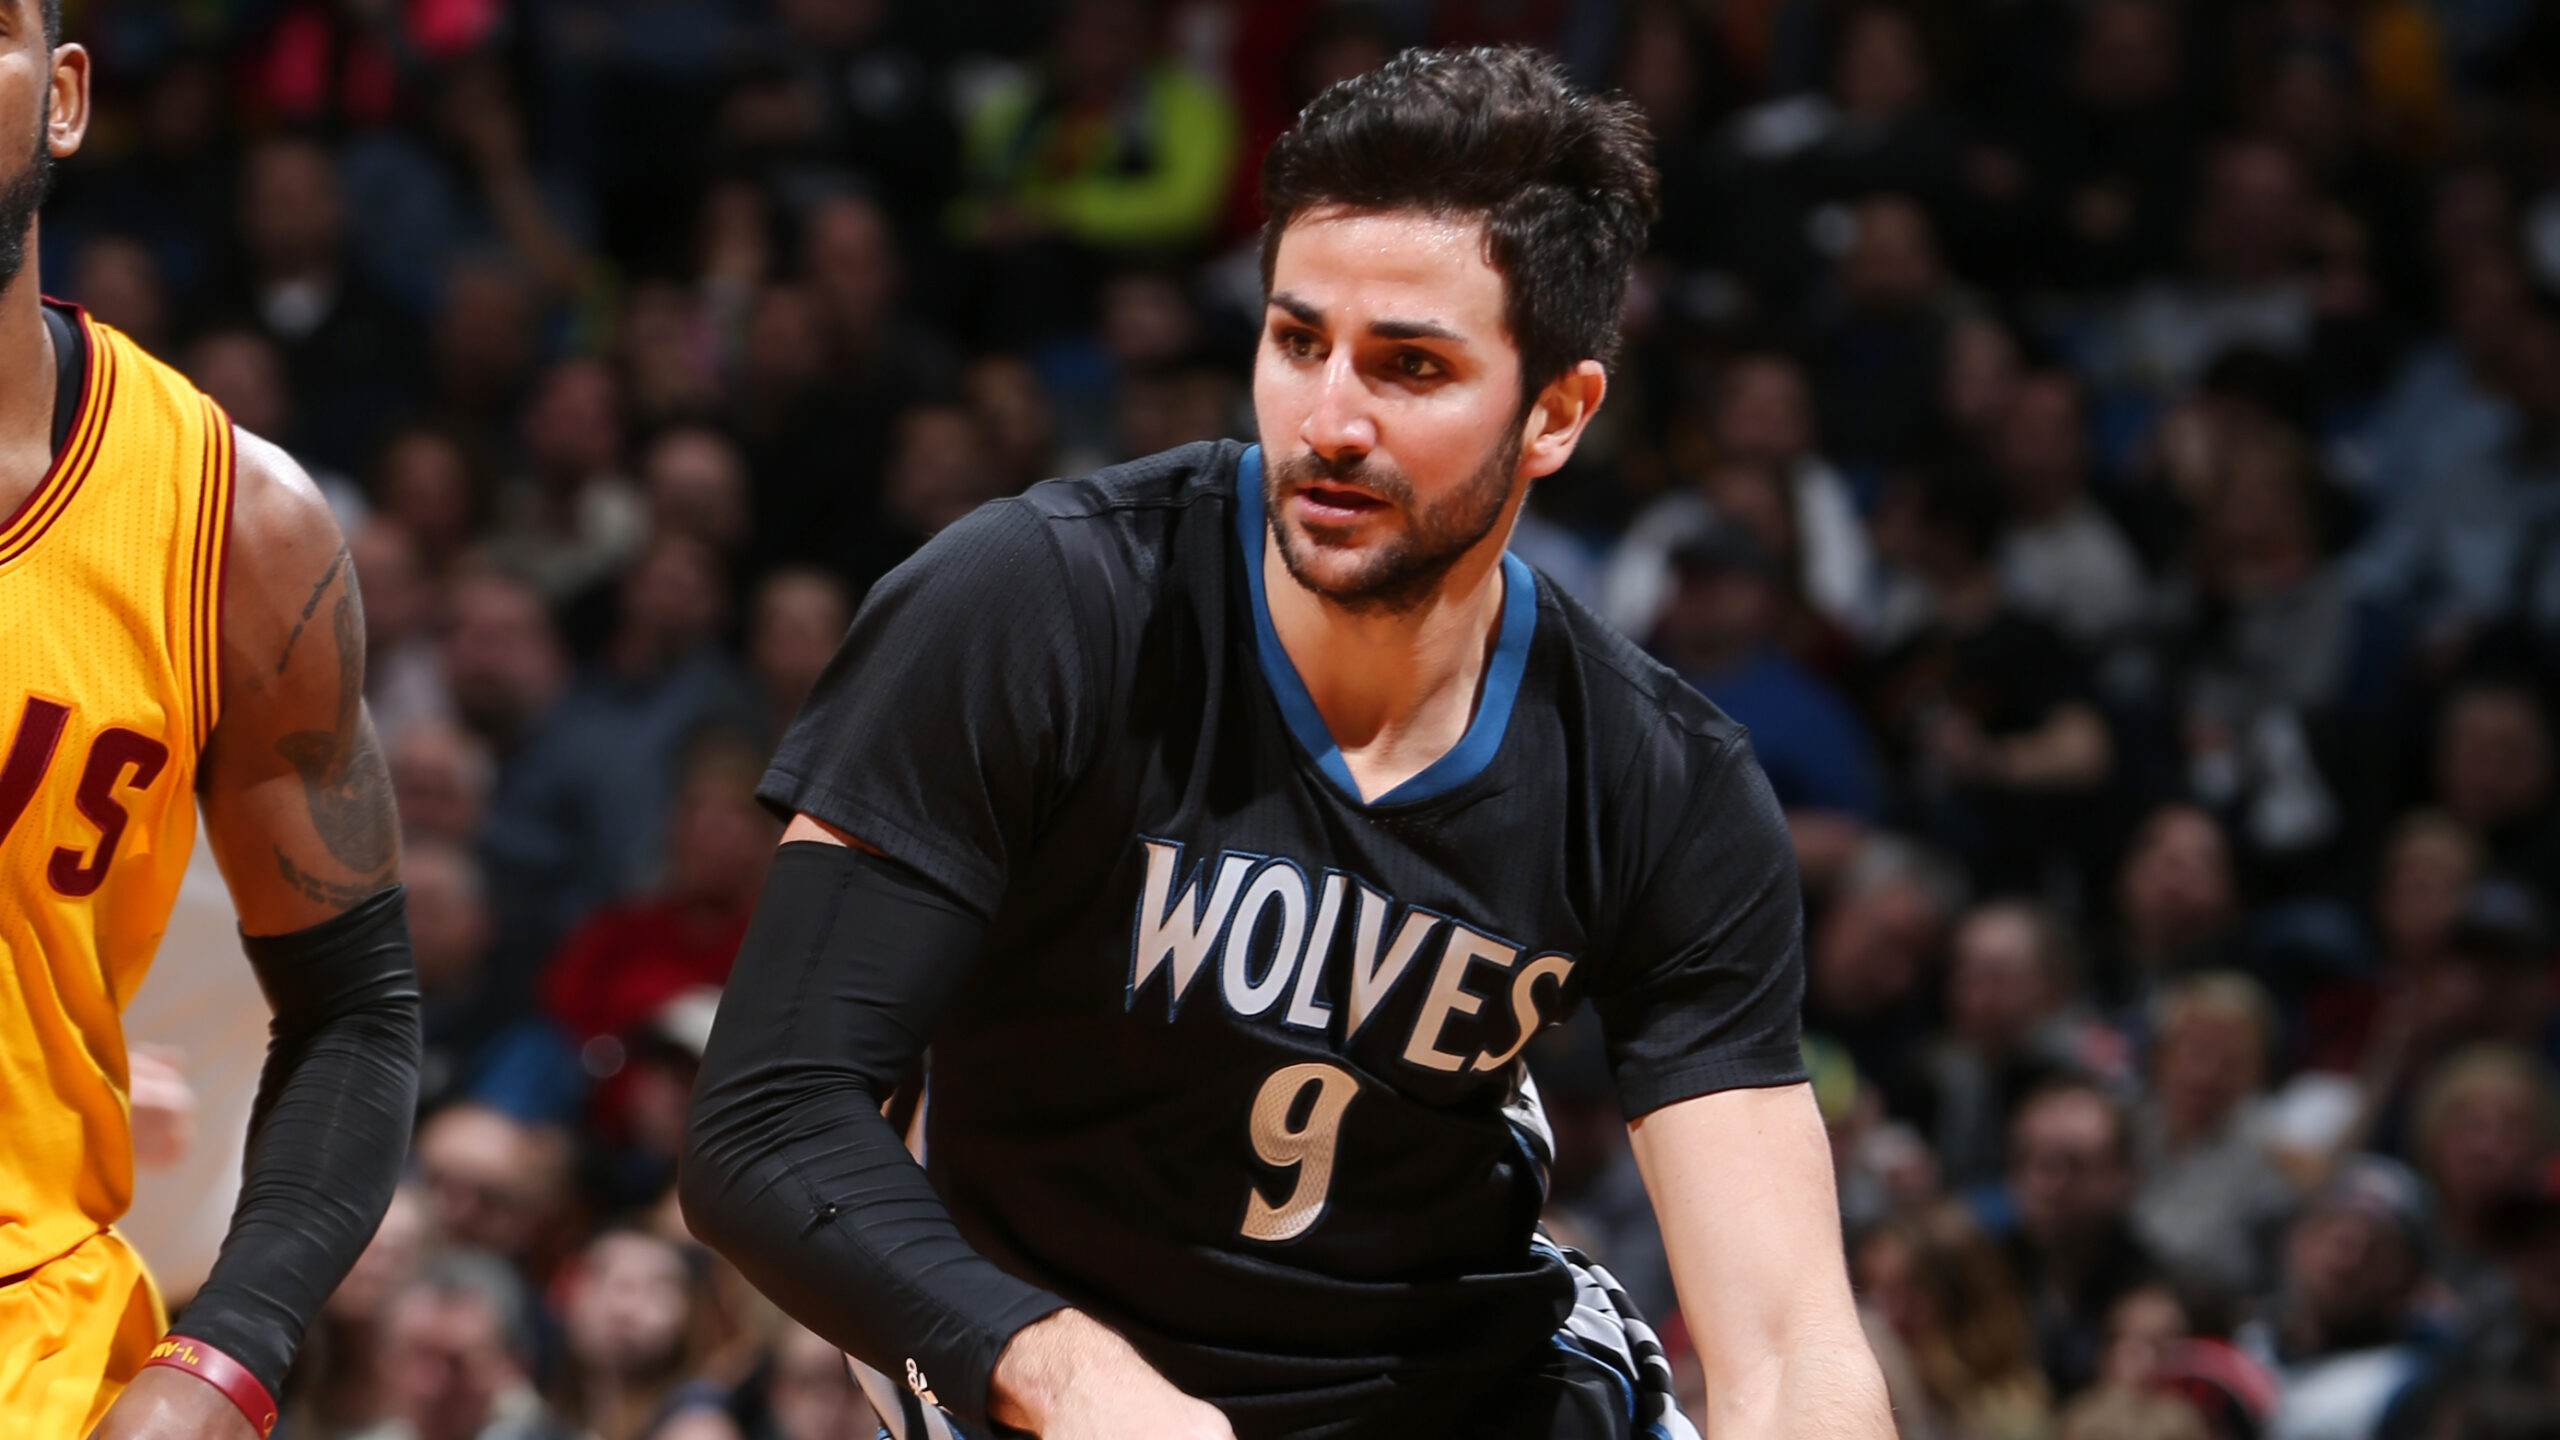 Ricky Rubio returns to Timberwolves with sharper perspective and skills